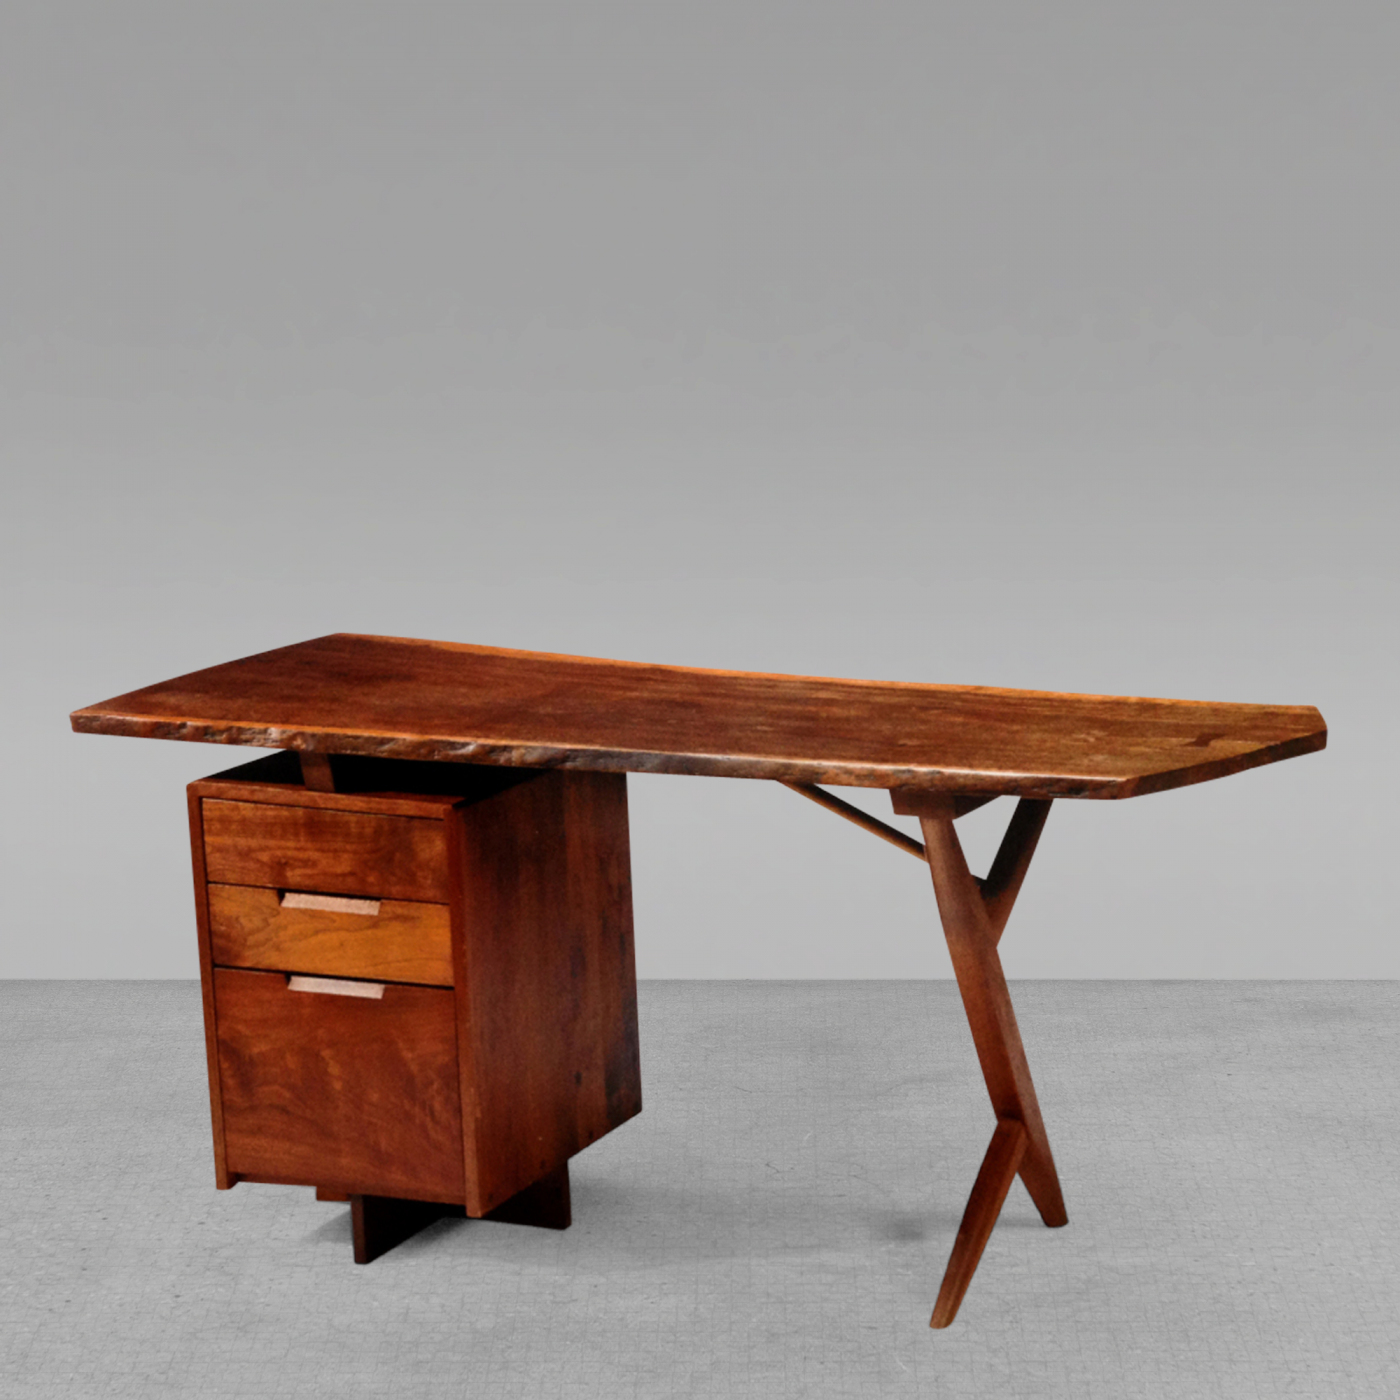 Desks With Drawers George Nakashima Rare Walnut And Laurel Wood Cross Legged Desk With Drawers George Nakashima